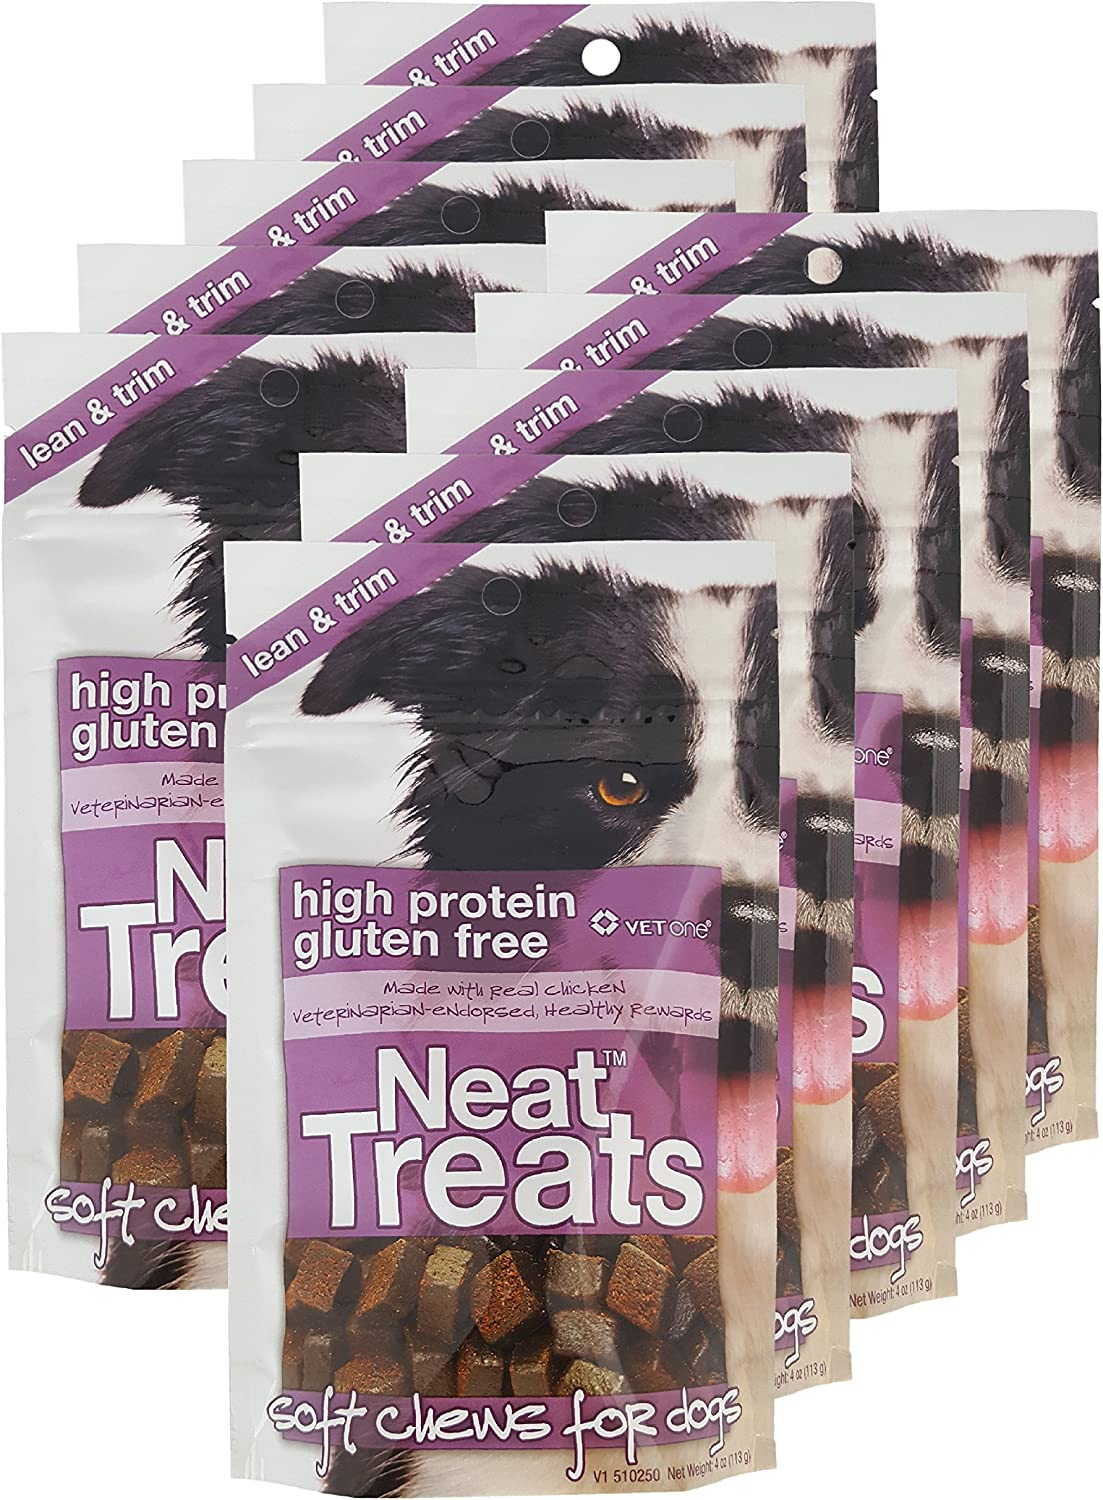 VET ONE 840235138242 10-4 oz Resealable Neat Treats Soft Chews for Dogs